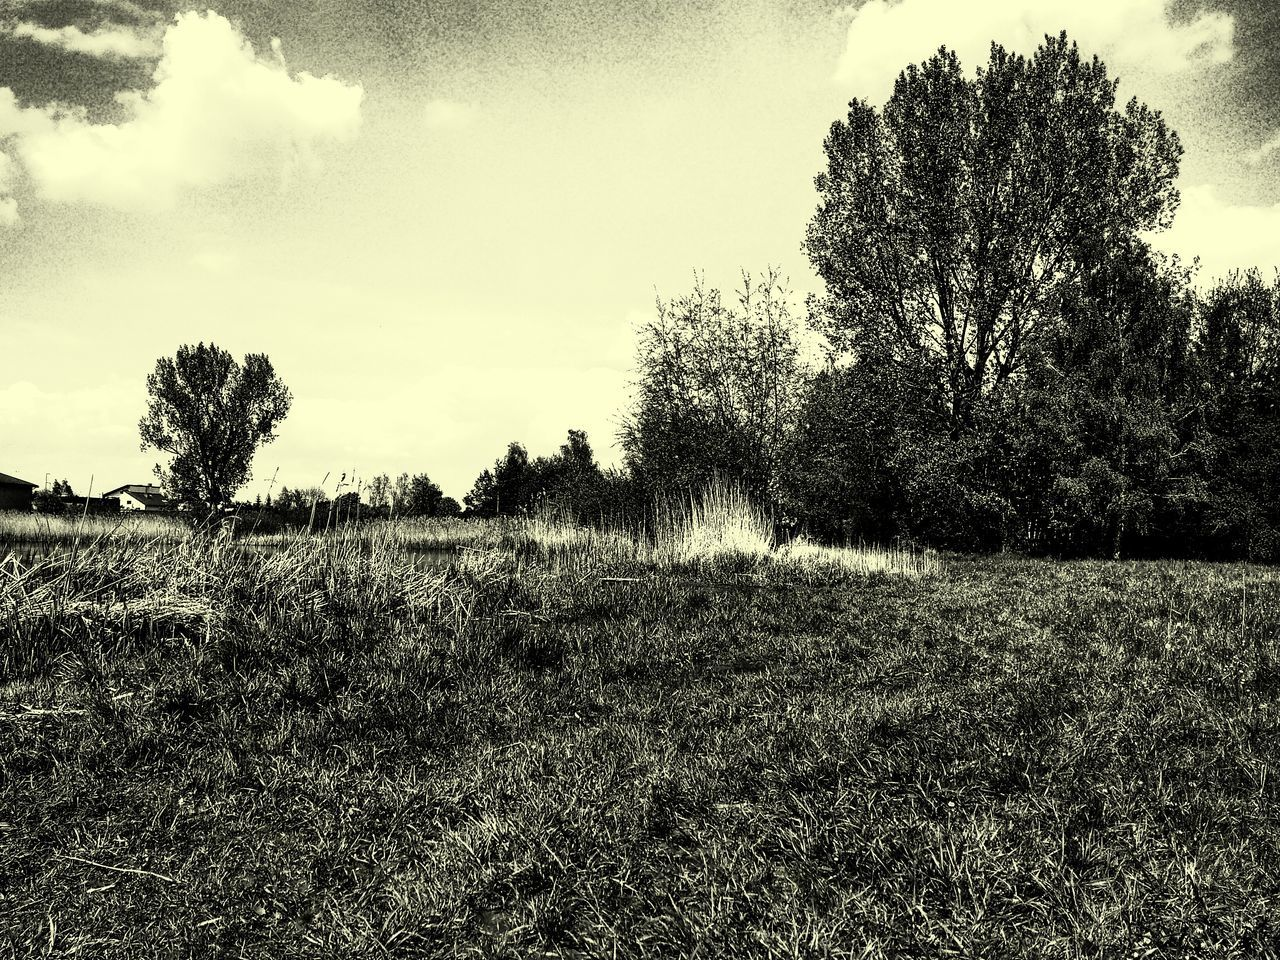 Sky Cloud - Sky Outdoors Nature No People Day Tree Water Beauty In Nature EyeEmNewHere Nature Cloud And Sky Cloud Trees And Sky Clouds And Sky Beautiful Nature Trees EyeEm Nature Lover Black & White Grass Reeds Pond Blackandwhite Black And White Eyeem Market